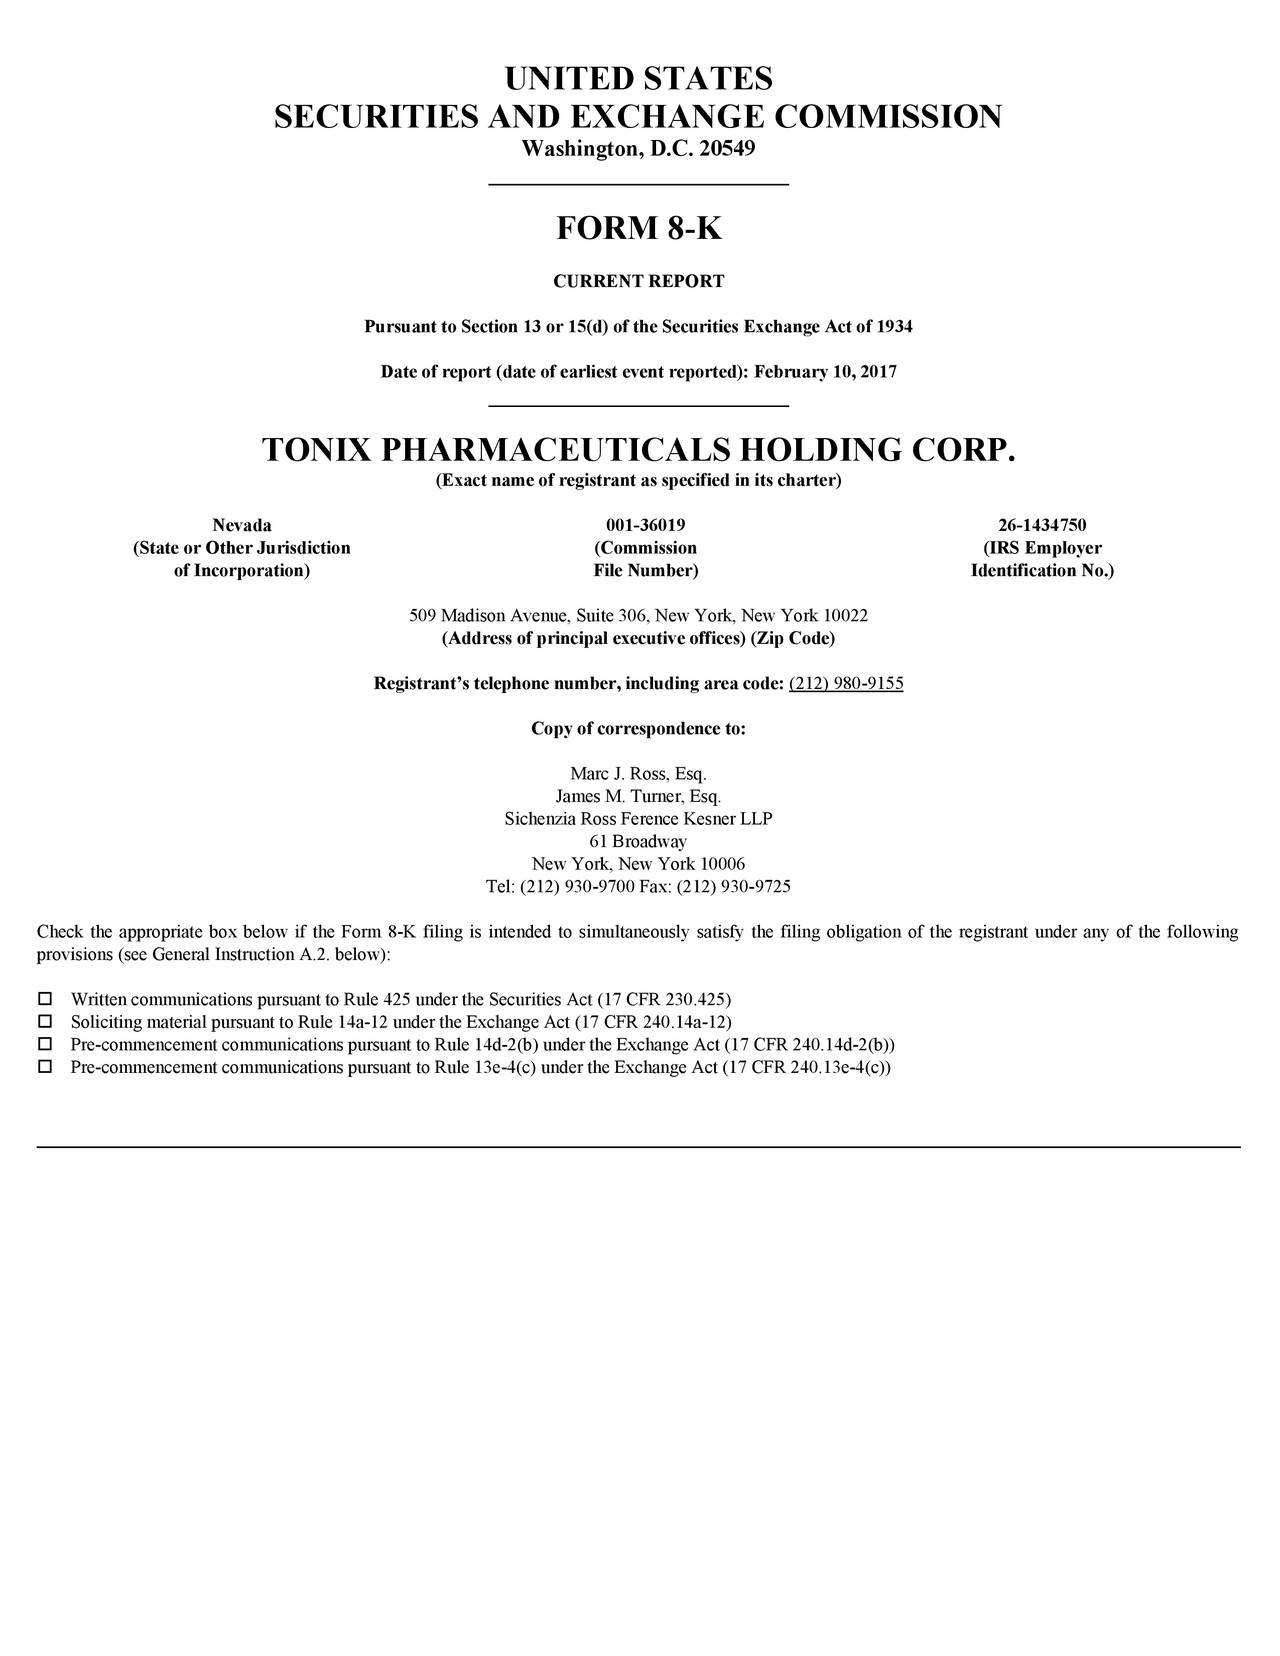 SECURITIES AND EXCHANGE COMMISSION Washington, D.C. 20549 FORM 8-K CURRENTREPORT Pursuant to Section 13 or 15(d) of the Securities Exchange Act of 1934 Date of report (date of earliest event reported): February 10, 2017 TONIX PHARMACEUTICALS HOLDING CORP. (Exact name of registrant as specified in its charter) Nevada 001-36019 26-1434750 (State or Other Jurisdiction (Commission (IRSEmployer of Incorporation) File Number) Identification No.) 509MadisonAvenue,Suite306,NewYork,NewYork10022 (Address of principal executive offices) (ZipCode) Registrants telephone number, including area code: (212)980-9155 Copy of correspondence to: MarcJ.Ross,Esq. JamesM.Turner,Esq. SichenziaRossFerenceKesnerLLP 61Broadway NewYork,NewYork10006 Tel:(212)930-9700Fax:(212)930-9725 ChecktheappropriateboxbelowiftheForm8-Kfilingisintendedtosimultaneouslysatisfythefilingobligationoftheregistrantunderanyofthefollowing provisions(seeGeneralInstructionA.2.below): WrittencommunicationspursuanttoRule425undertheSecuritiesAct(17CFR230.425) SolicitingmaterialpursuanttoRule14a-12undertheExchangeAct(17CFR240.14a-12) Pre-commencementcommunicationspursuanttoRule14d-2(b)undertheExchangeAct(17CFR240.14d-2(b)) Pre-commencementcommunicationspursuanttoRule13e-4(c)undertheExchangeAct(17CFR240.13e-4(c))